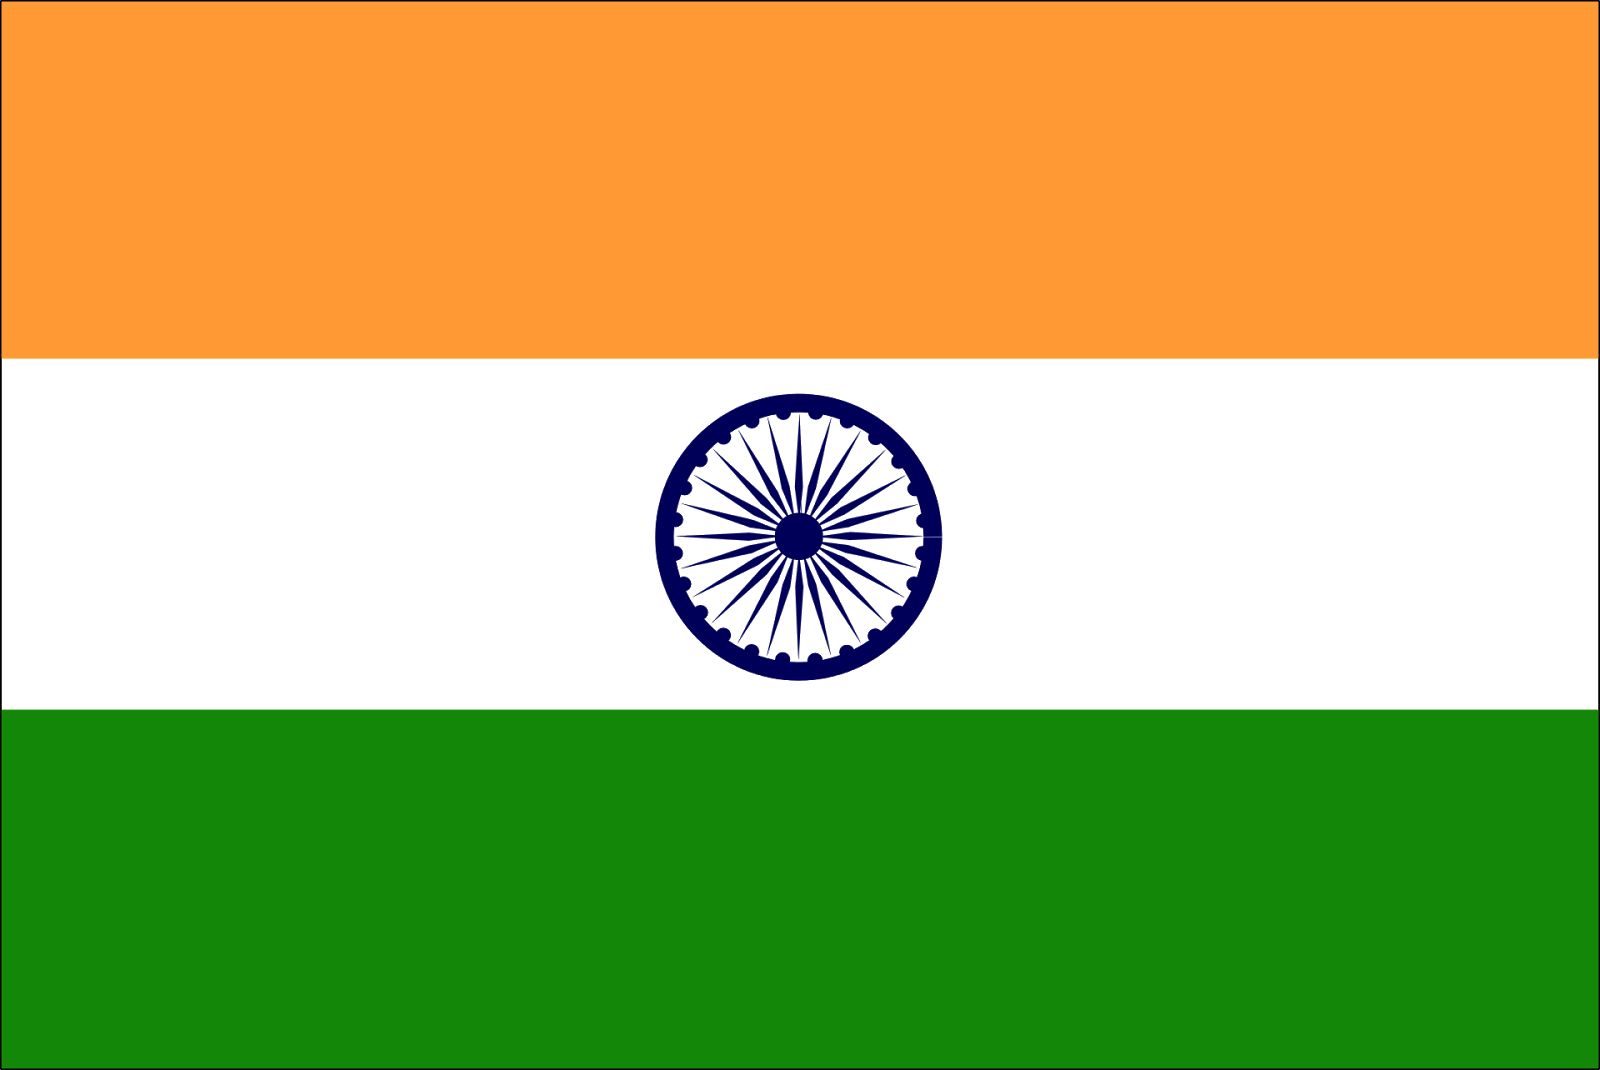 Indian Flag Images Wallpapers Download Indian%2BFlag%2BImages%2BFor%2BWhatsapp